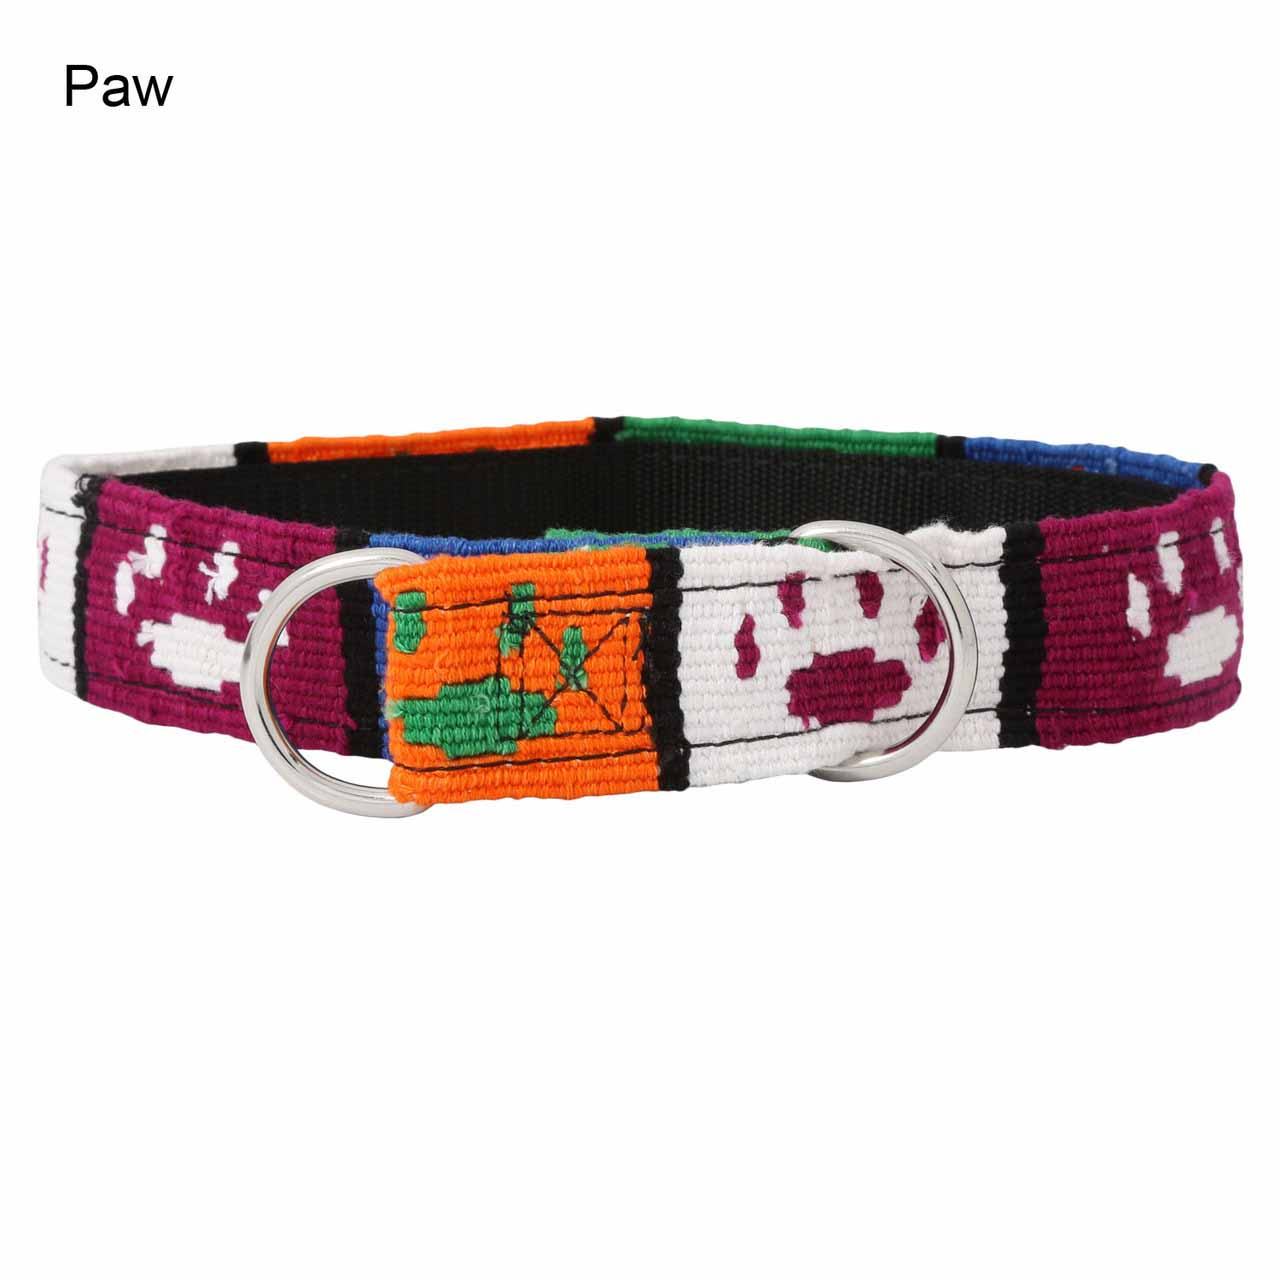 MAYA Slip Collar - Paw Prints